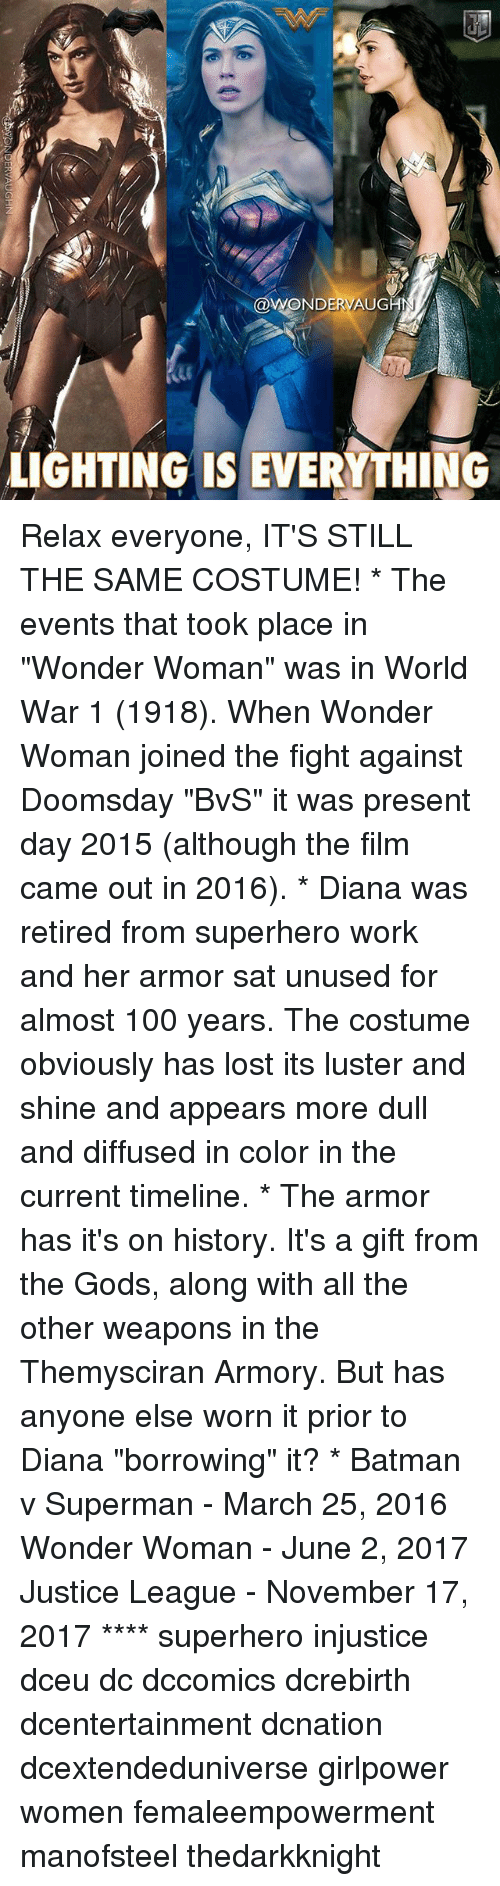 """Anaconda, Batman, and Memes: WONDERVAUG  LIGHTING IS EVERYTHING Relax everyone, IT'S STILL THE SAME COSTUME! * The events that took place in """"Wonder Woman"""" was in World War 1 (1918). When Wonder Woman joined the fight against Doomsday """"BvS"""" it was present day 2015 (although the film came out in 2016). * Diana was retired from superhero work and her armor sat unused for almost 100 years. The costume obviously has lost its luster and shine and appears more dull and diffused in color in the current timeline. * The armor has it's on history. It's a gift from the Gods, along with all the other weapons in the Themysciran Armory. But has anyone else worn it prior to Diana """"borrowing"""" it? * Batman v Superman - March 25, 2016 Wonder Woman - June 2, 2017 Justice League - November 17, 2017 **** superhero injustice dceu dc dccomics dcrebirth dcentertainment dcnation dcextendeduniverse girlpower women femaleempowerment manofsteel thedarkknight"""